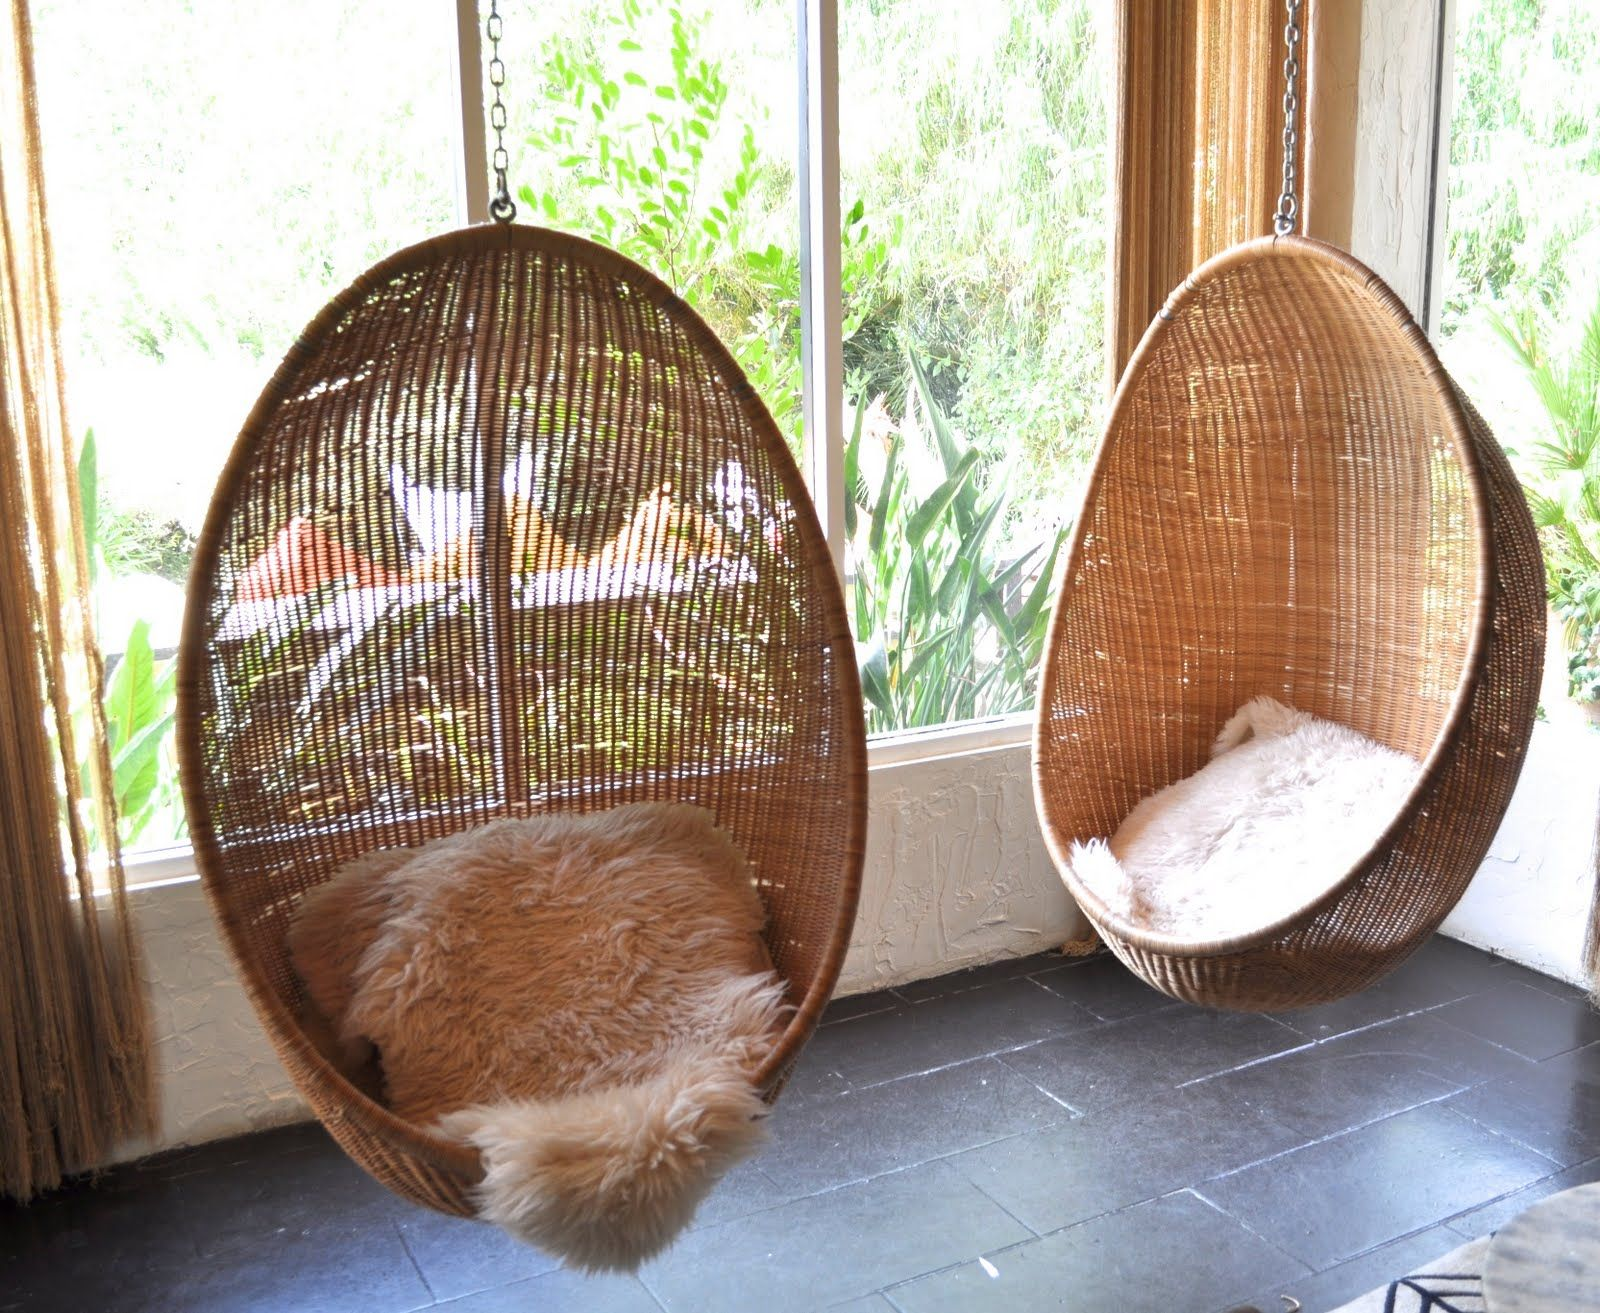 Retro Hanging Chair Egg Hanging Seats Hanging Basket Chair Nz Hanging Basket Chairs